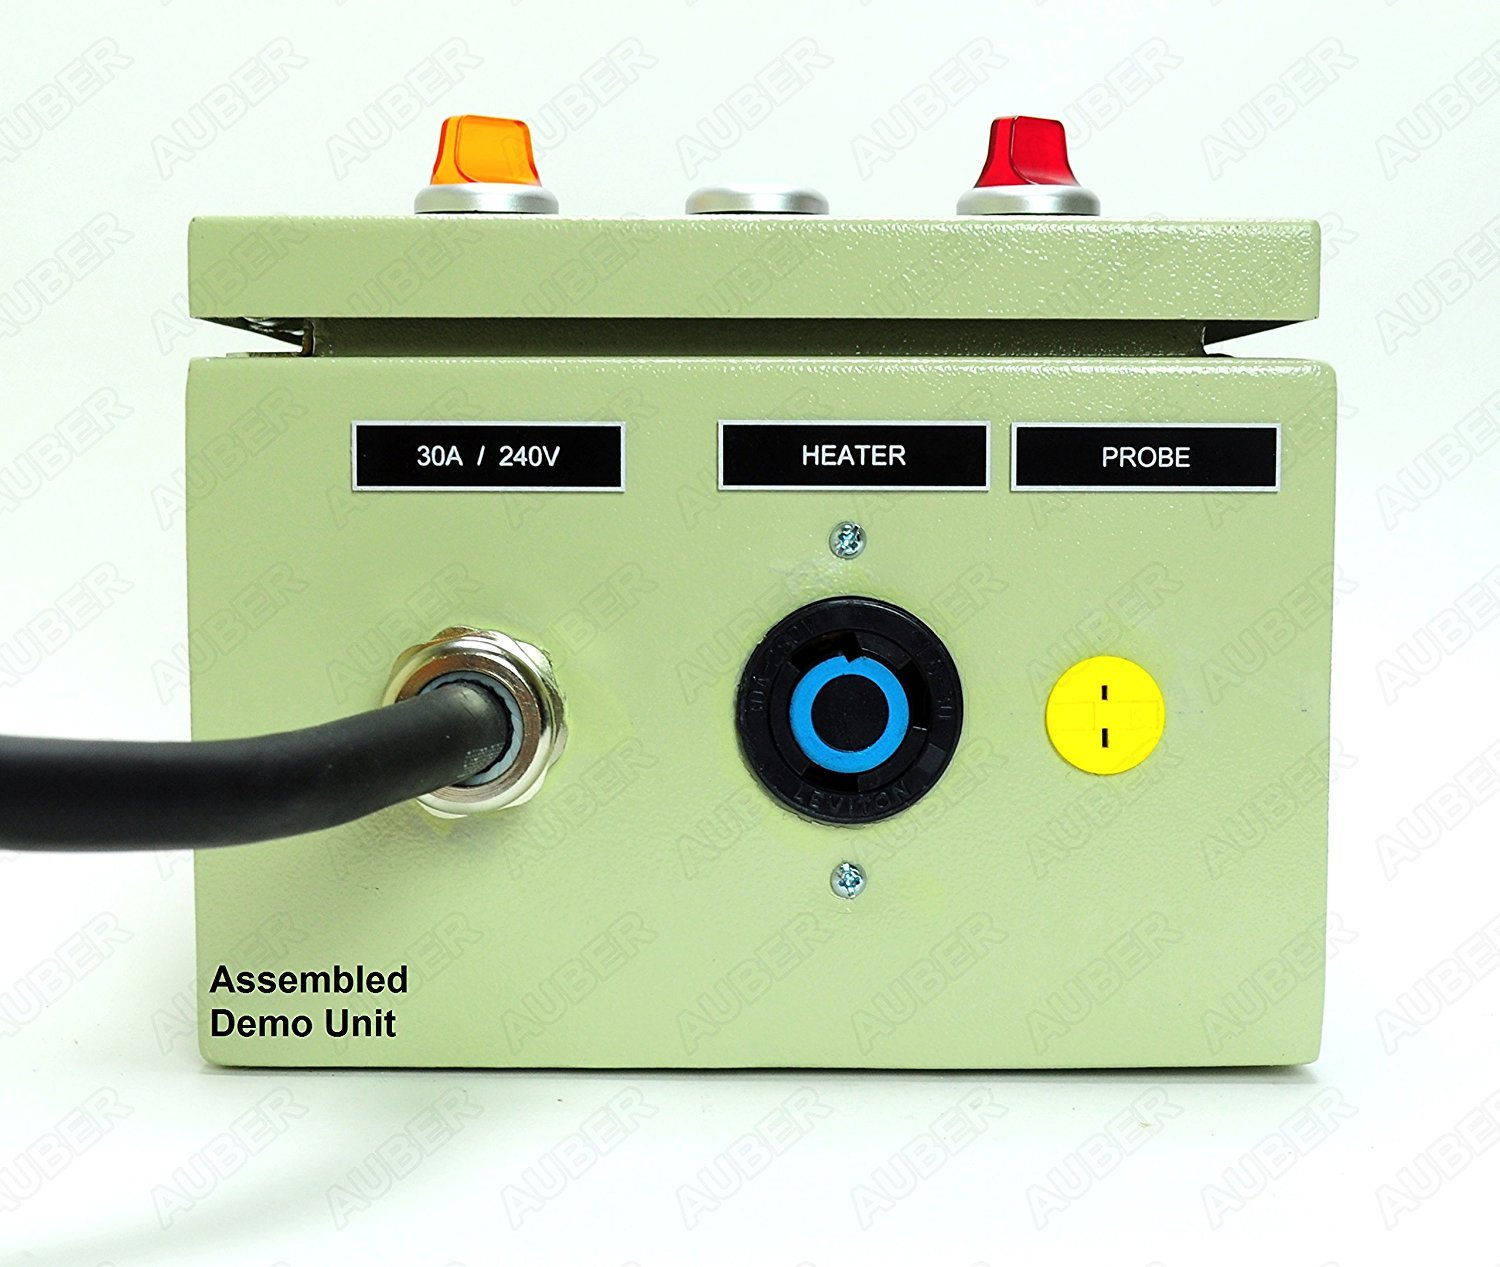 Powder Coating Oven Controller Kit 240v 30a 7200w Intl Pid Wiring Diagram Coat Model Pco Kitchen Dining